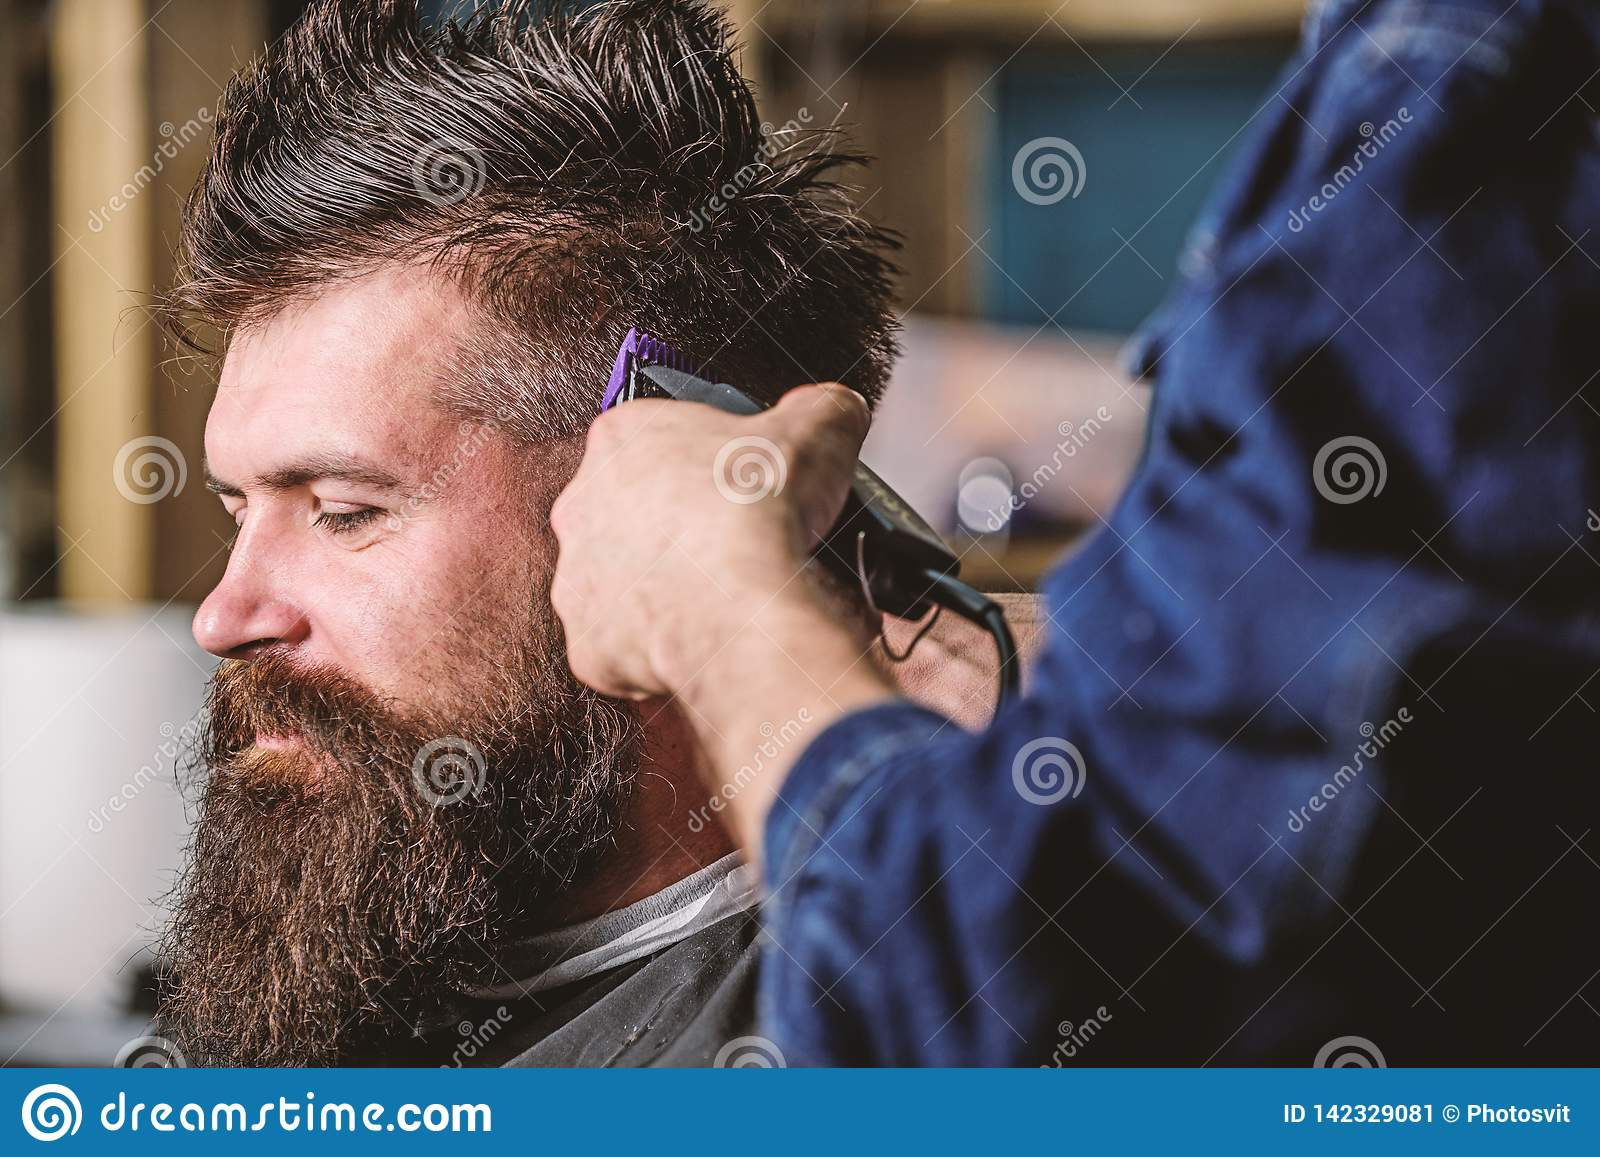 Barbershop concept. Hands of barber with hair clipper, close up. Hipster bearded client getting hairstyle. Barber works